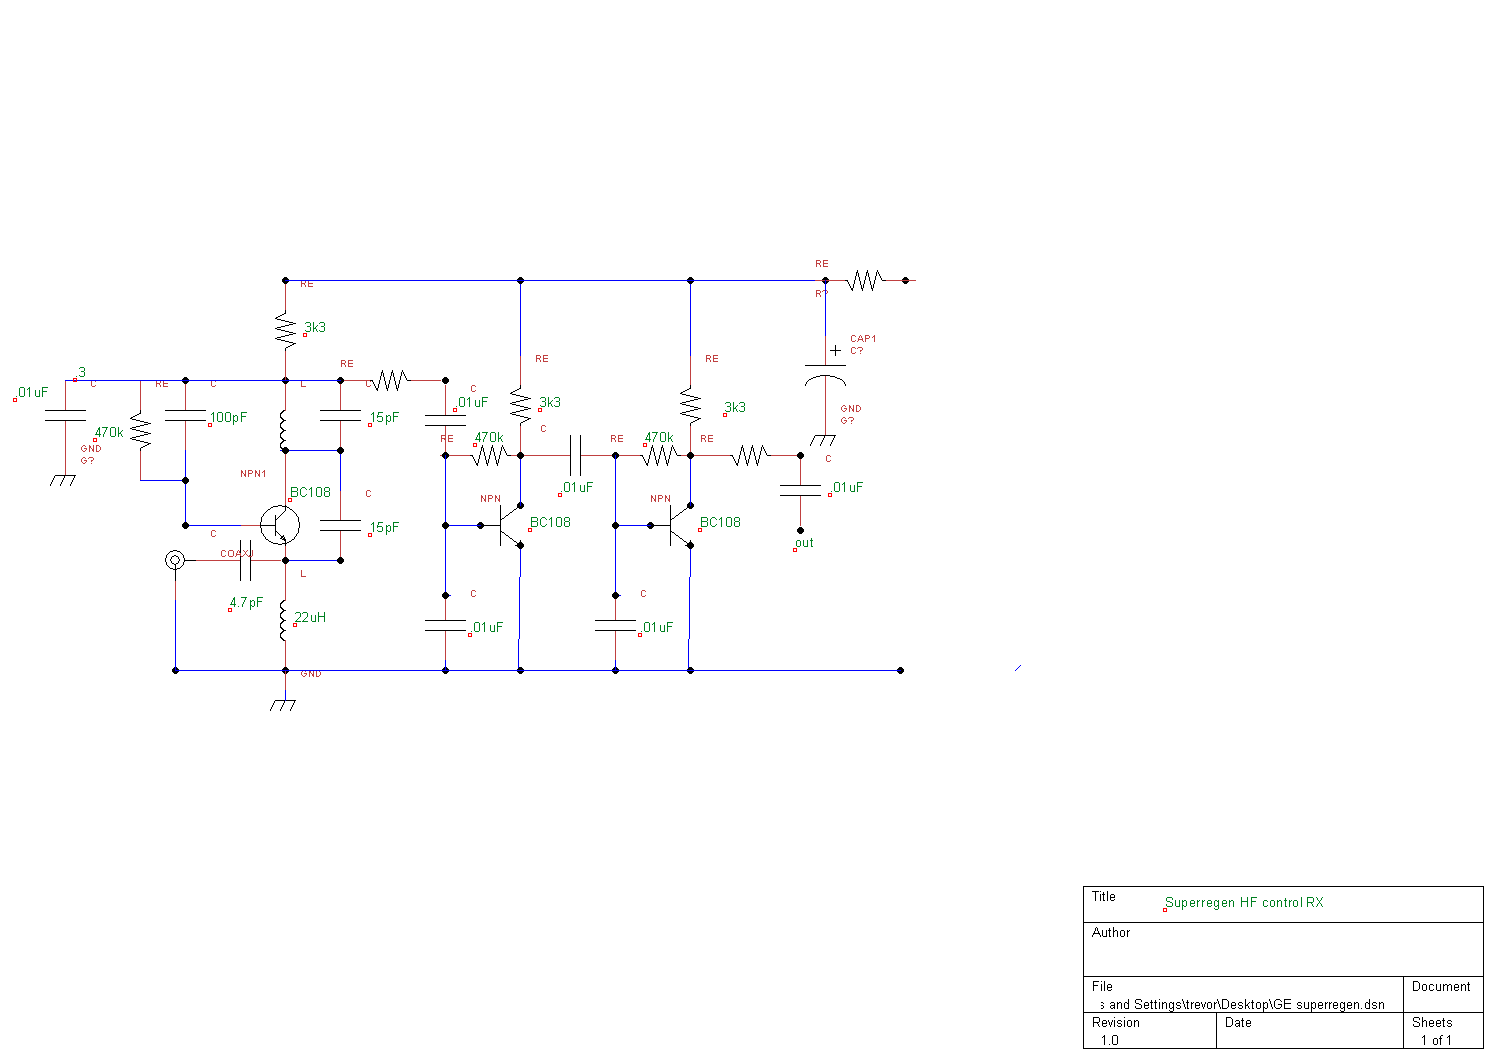 Electronic Circuit Schematics Digital Thermometer Diagram For Superregenerative Receiver Built By Ge Labs